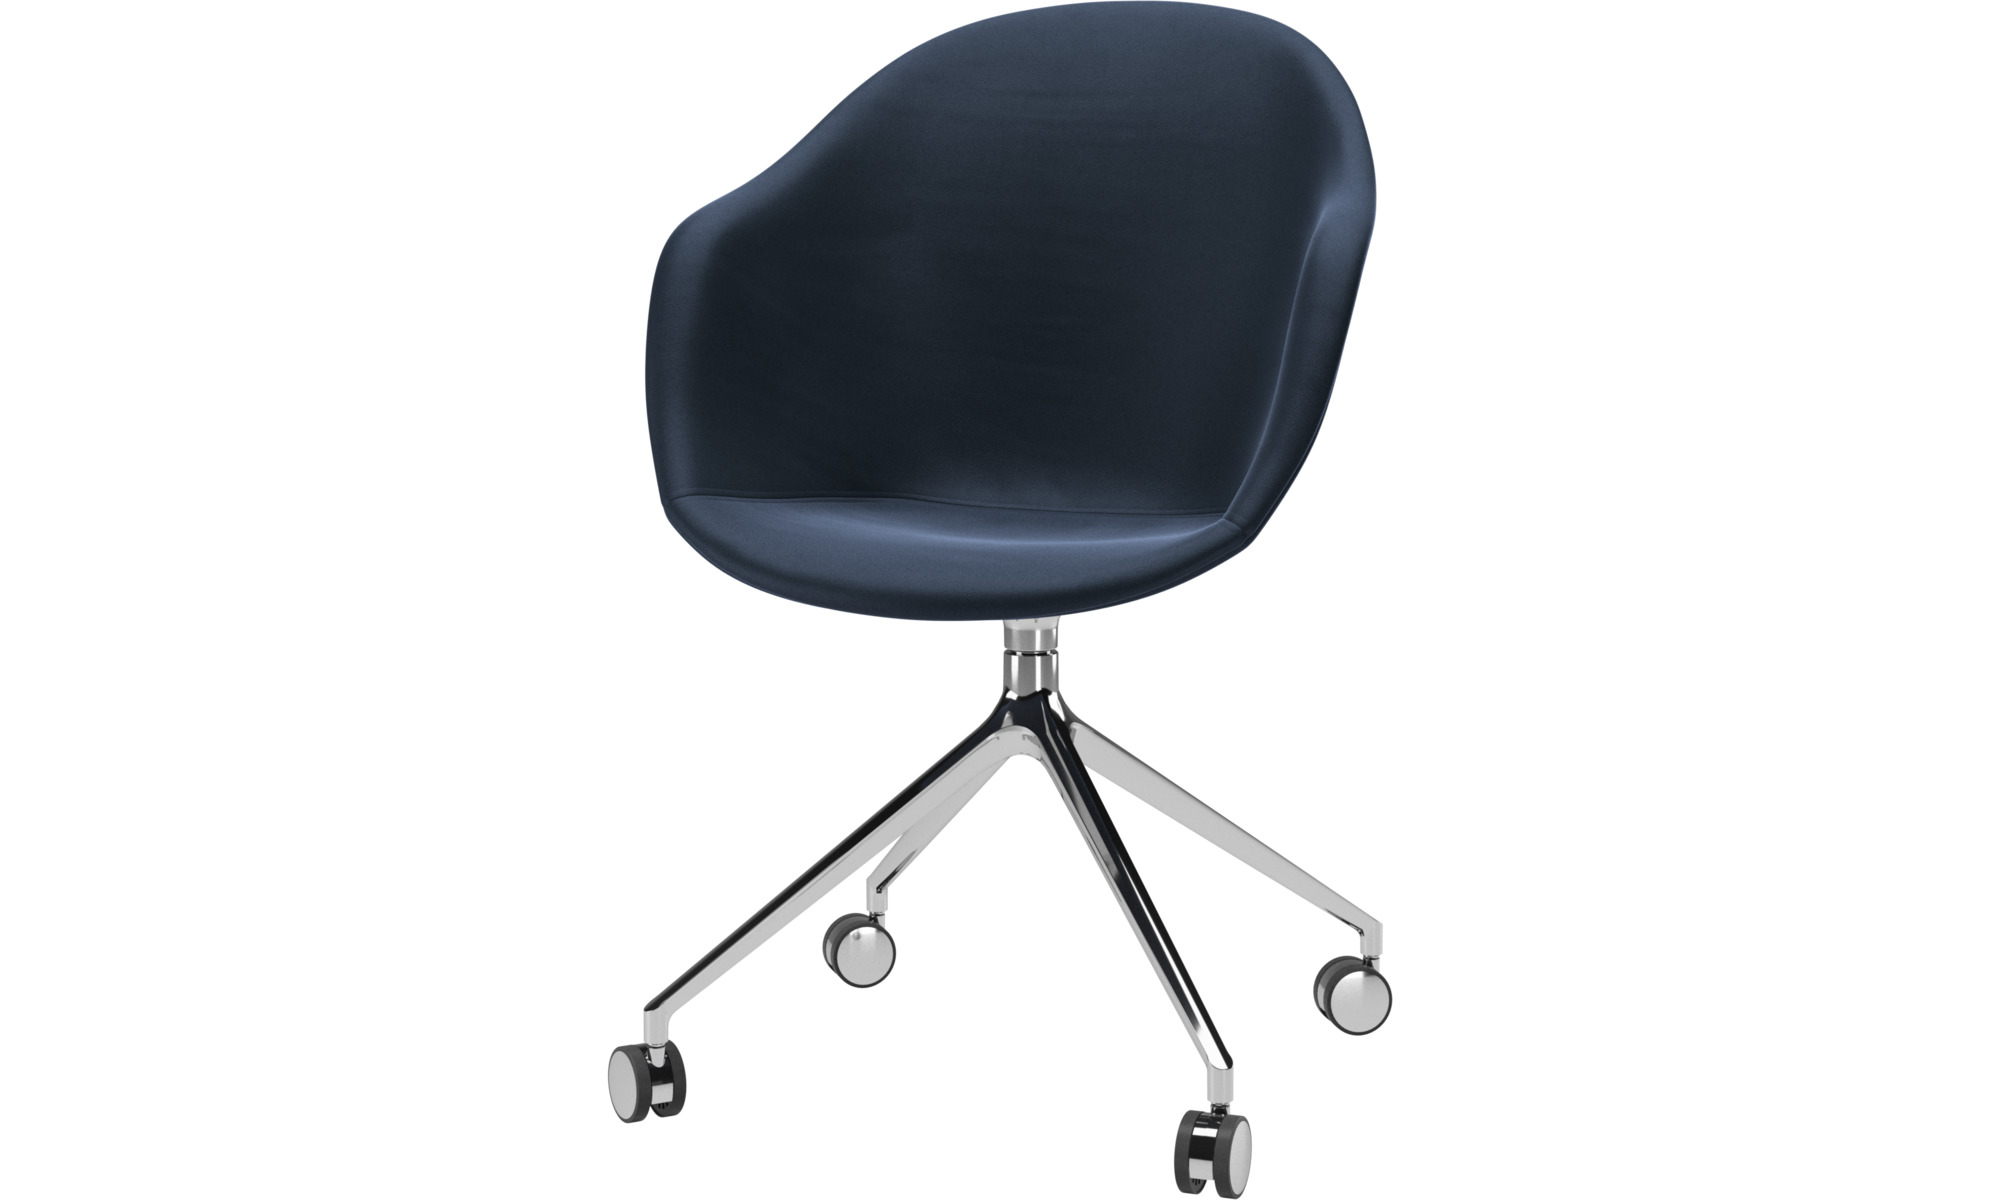 Home office chairs - Adelaide chair with swivel function and wheels - Blue - Leather